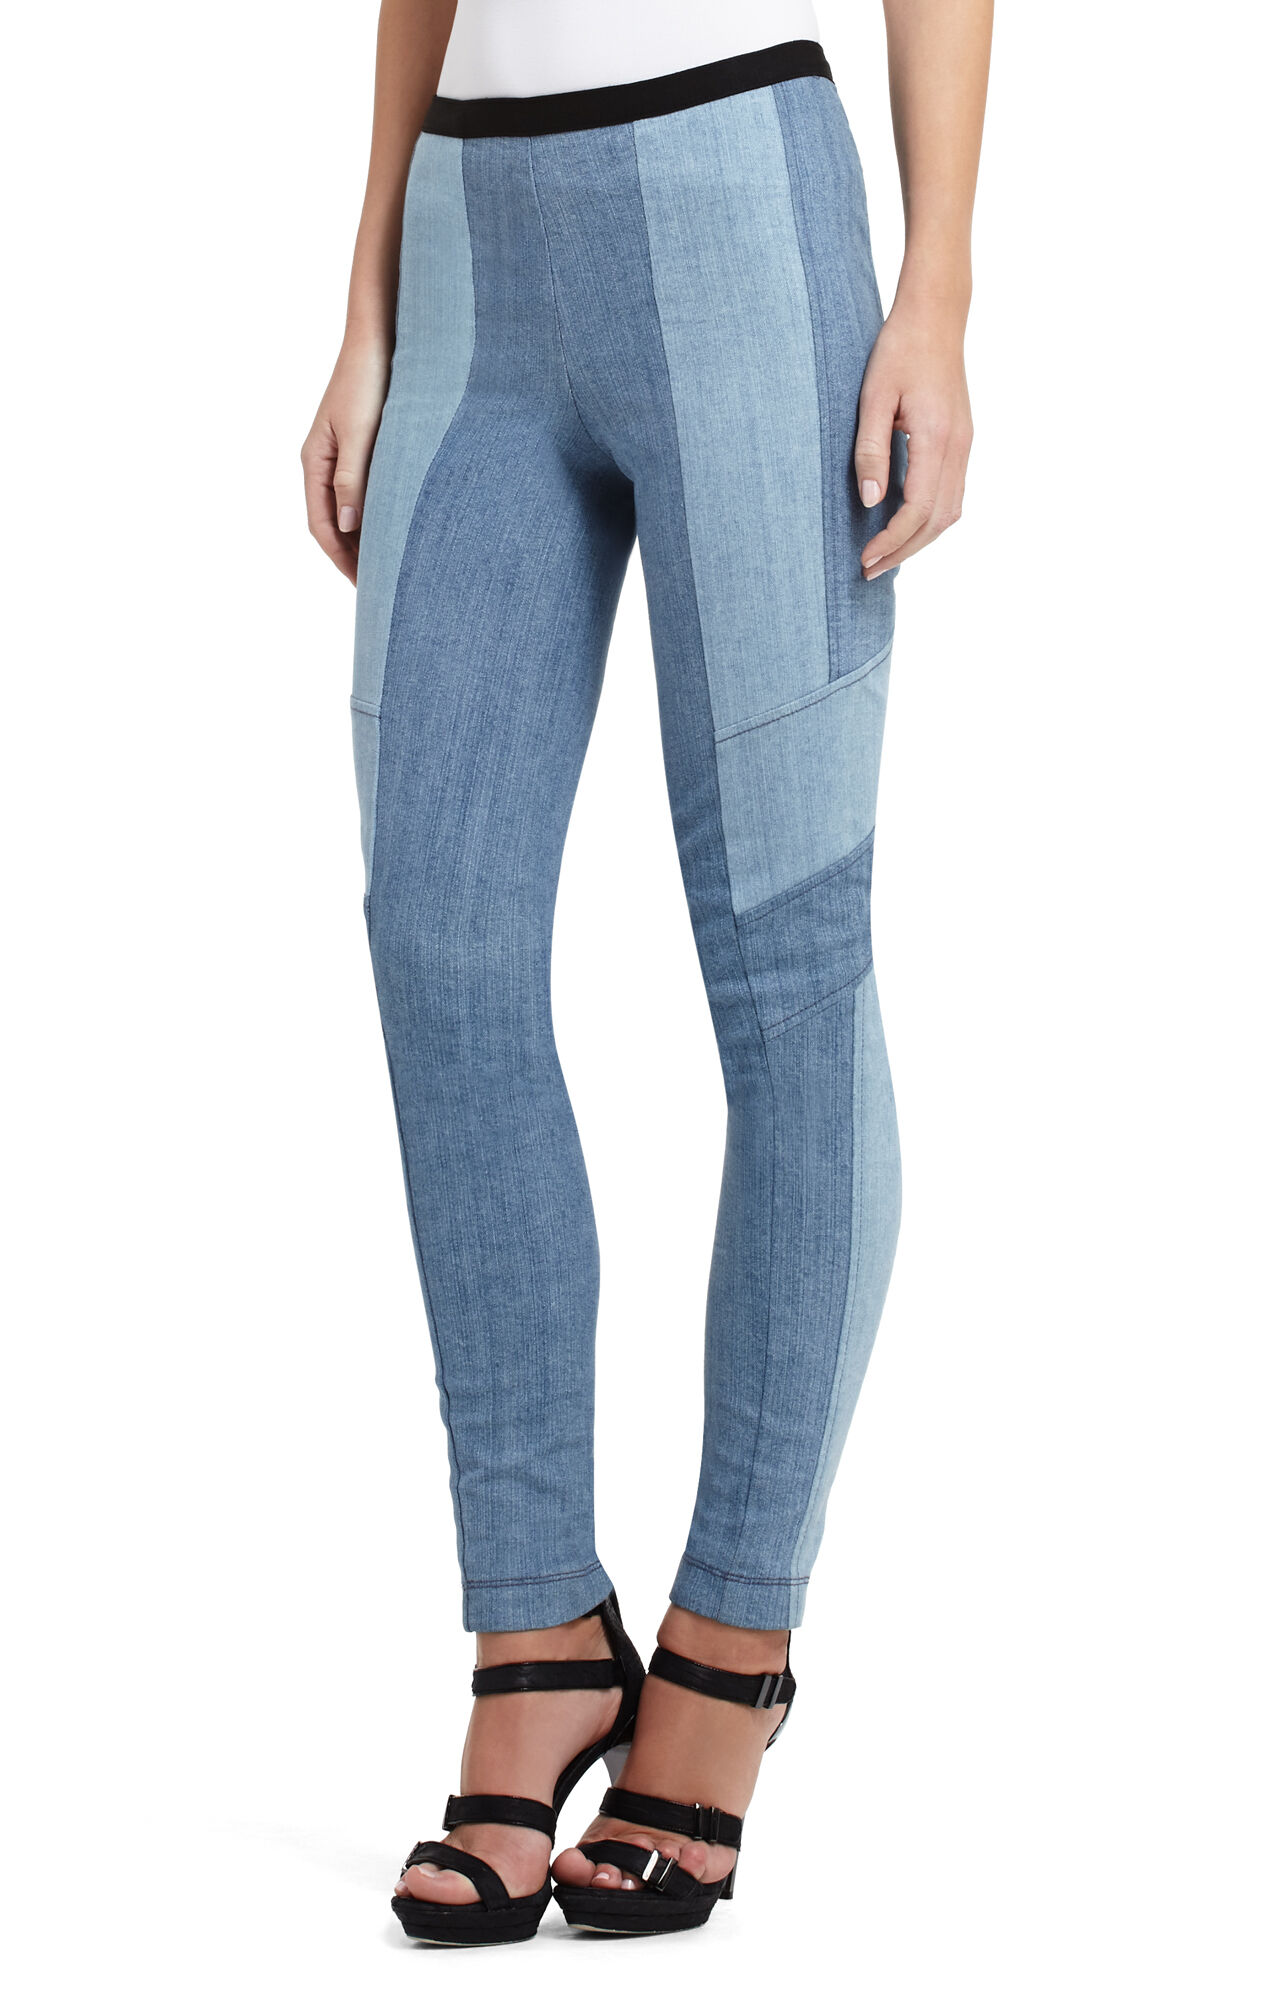 Cancetta Paneled Denim Legging